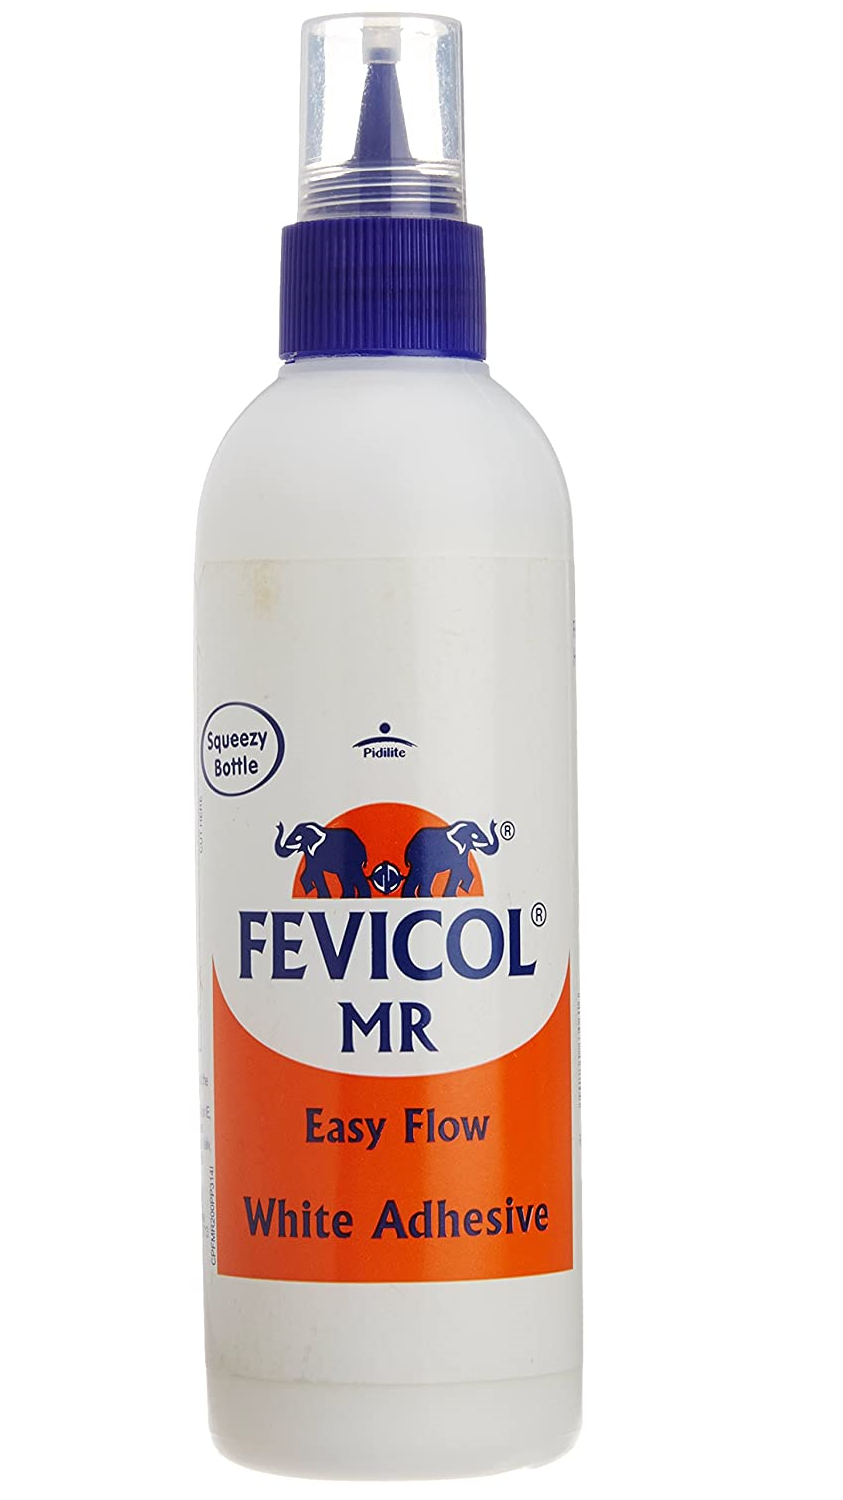 Fevicol MR Squeeze Bottle, 200 grams